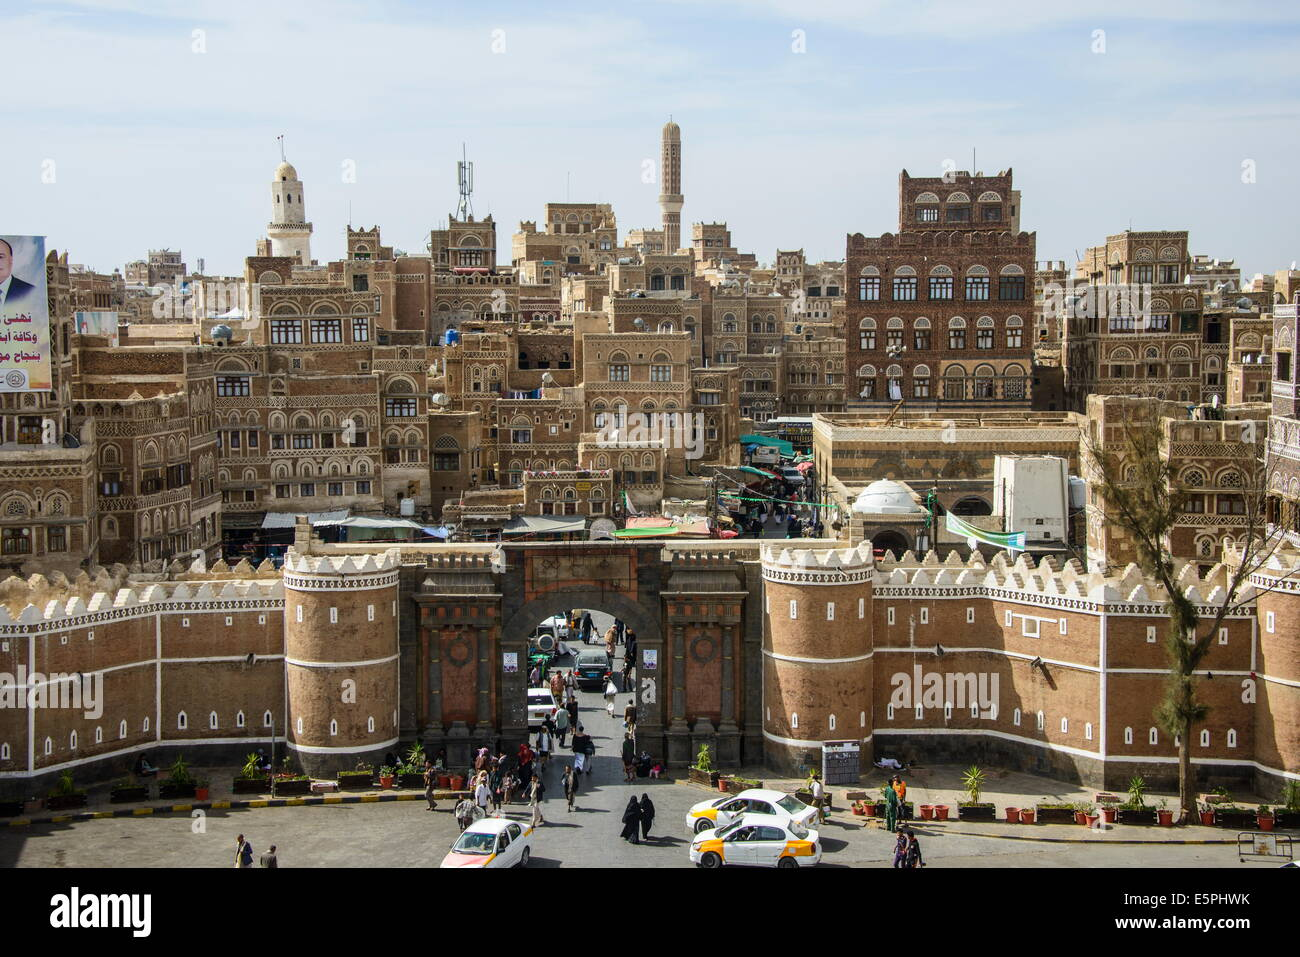 Bab al Yemen and the Old Town, UNESCO World Heritage Site, Sanaa, Yemen, Middle East Stock Photo